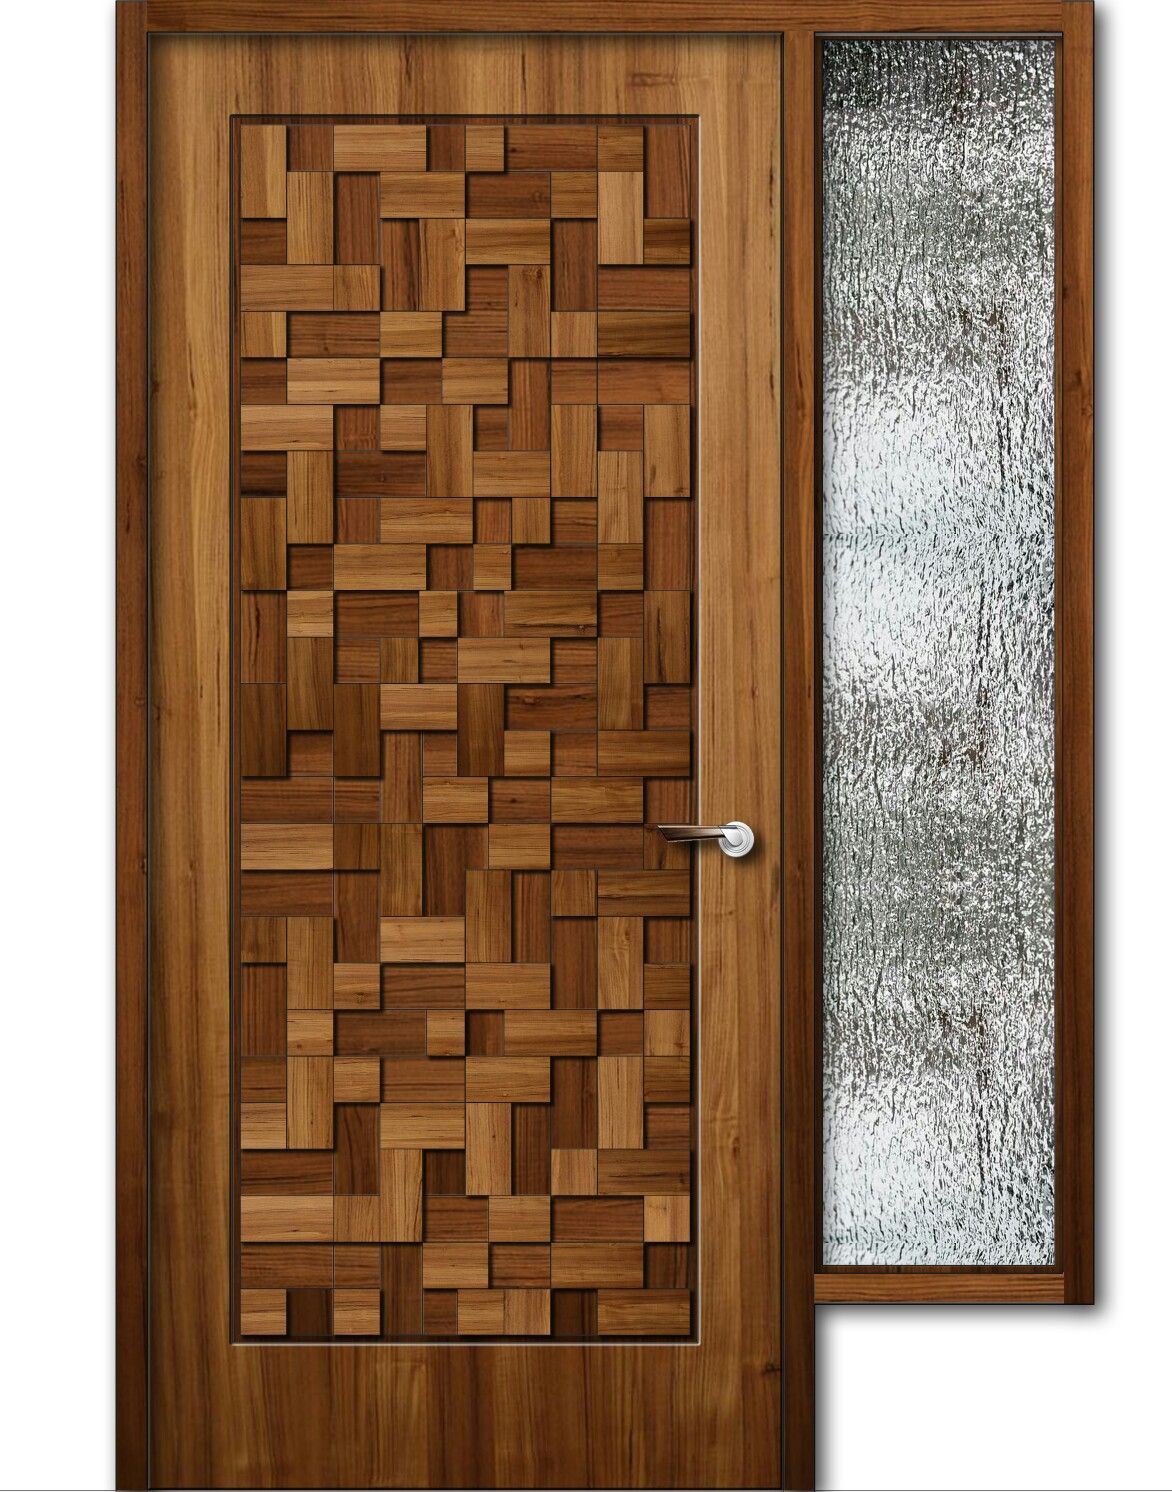 Teak wood finish wooden door with window 8feet height for Wooden door pattern